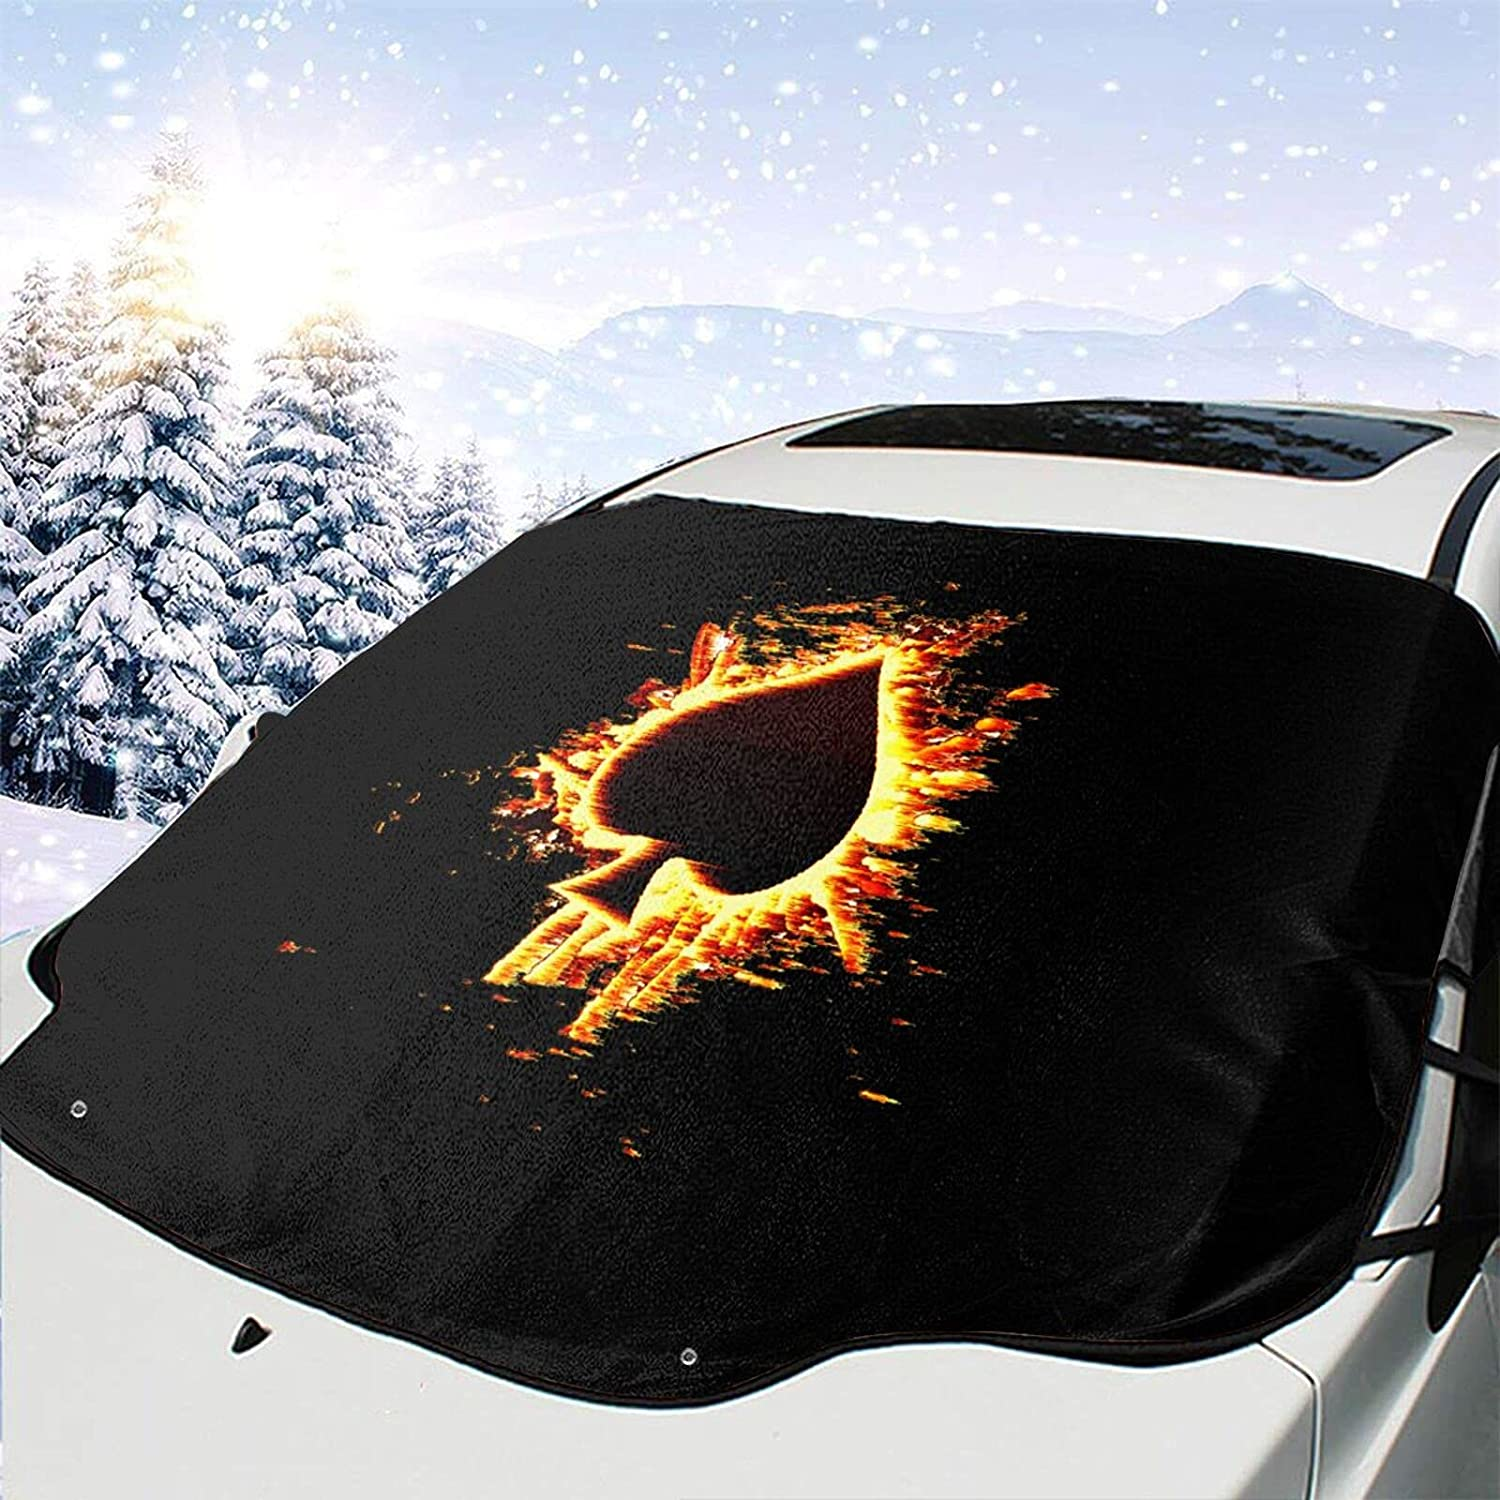 Max 50% OFF Choice Poker Ace of Spades Windshield Snow Cover Wiper Removal Ice Viso